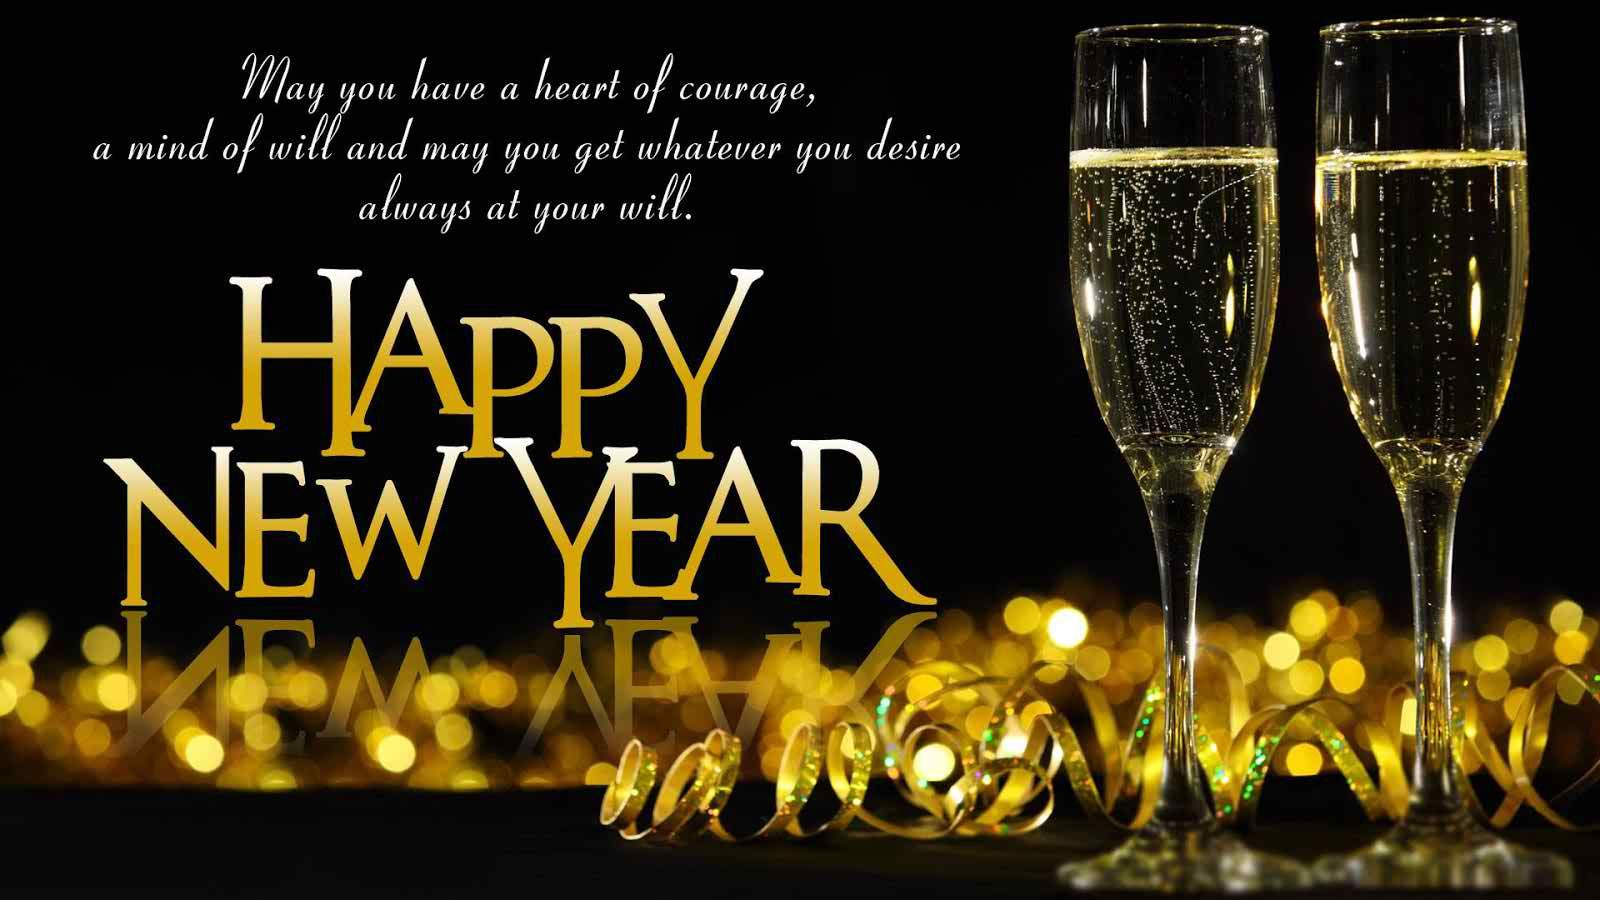 Happy new year 2017 hd wallpapers and images happy new year 2017 new year motivational quotes 2016 happy new year 2016 quotes wishes sayings images kristyandbryce Choice Image